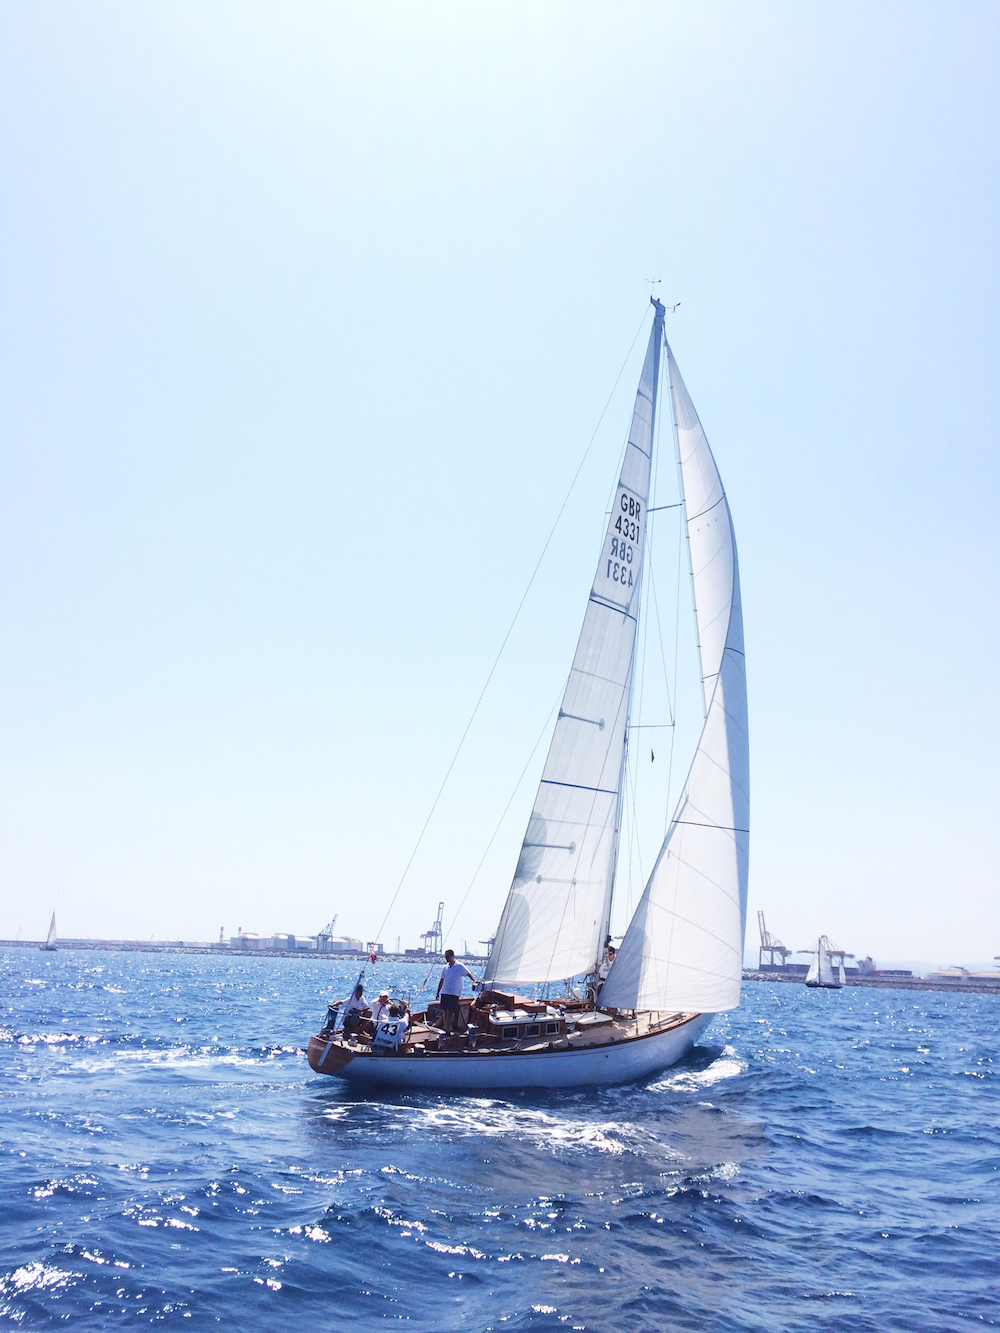 rcelona spain day sailing.PNG